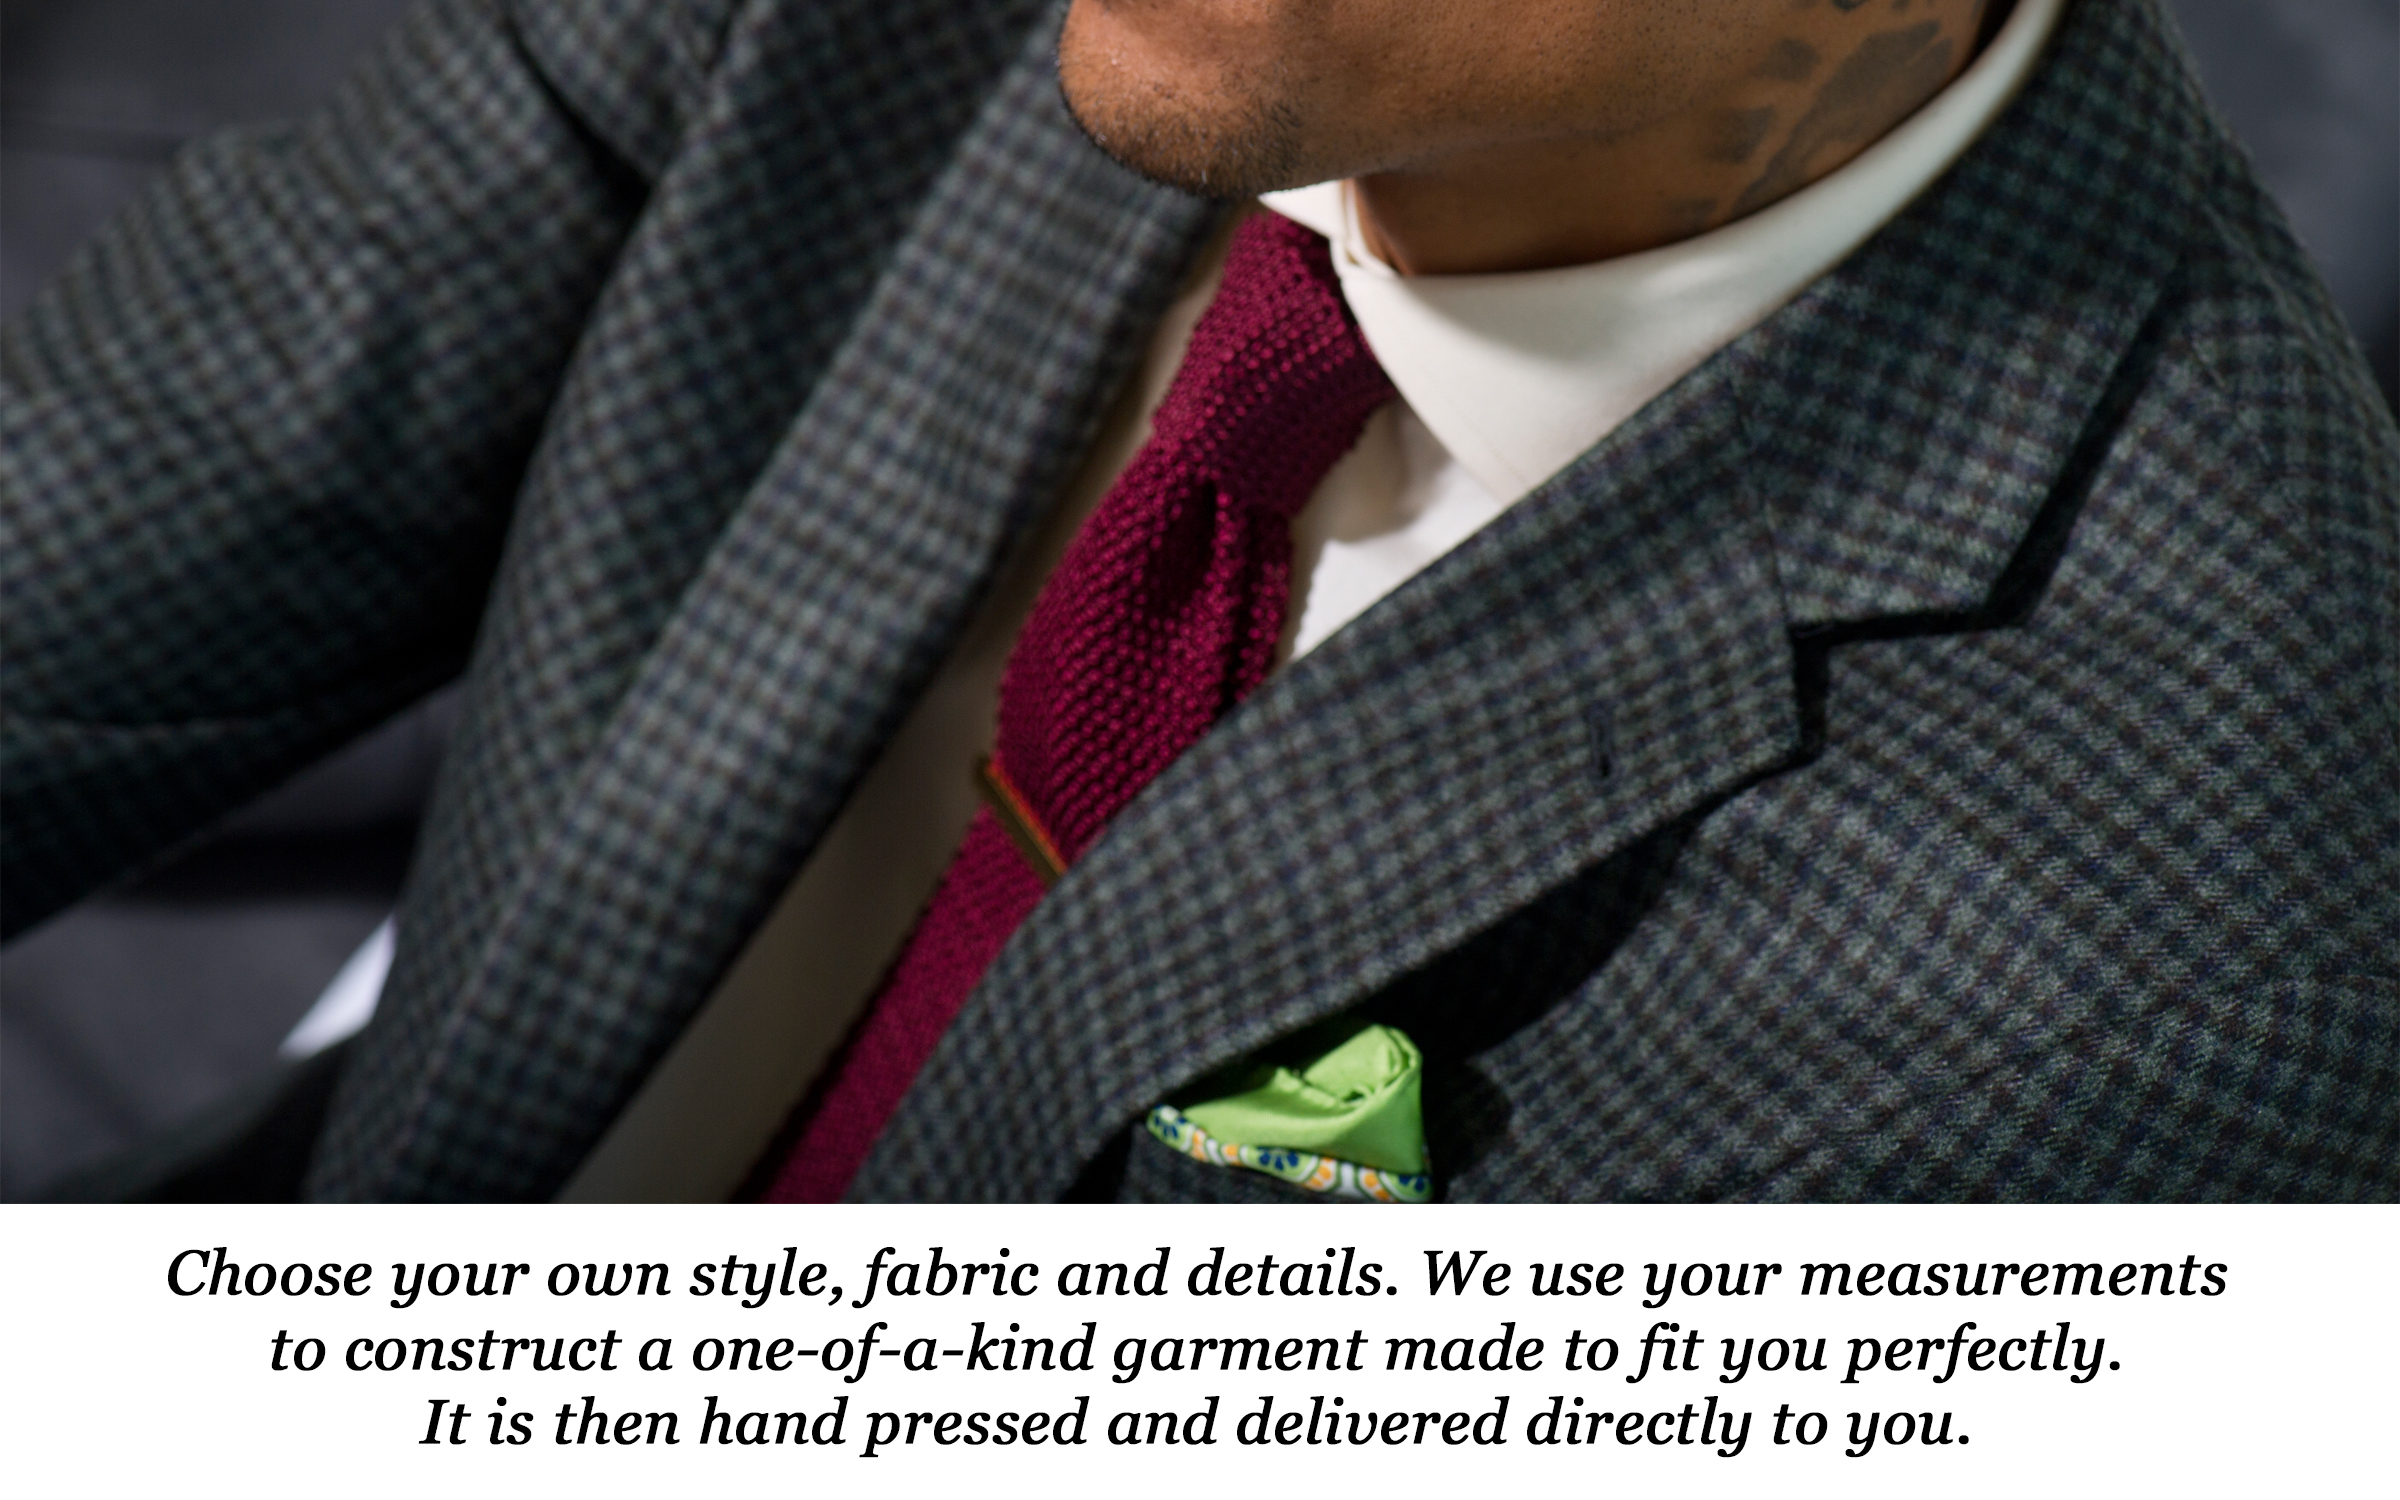 Made To Measure Page Pic.jpg